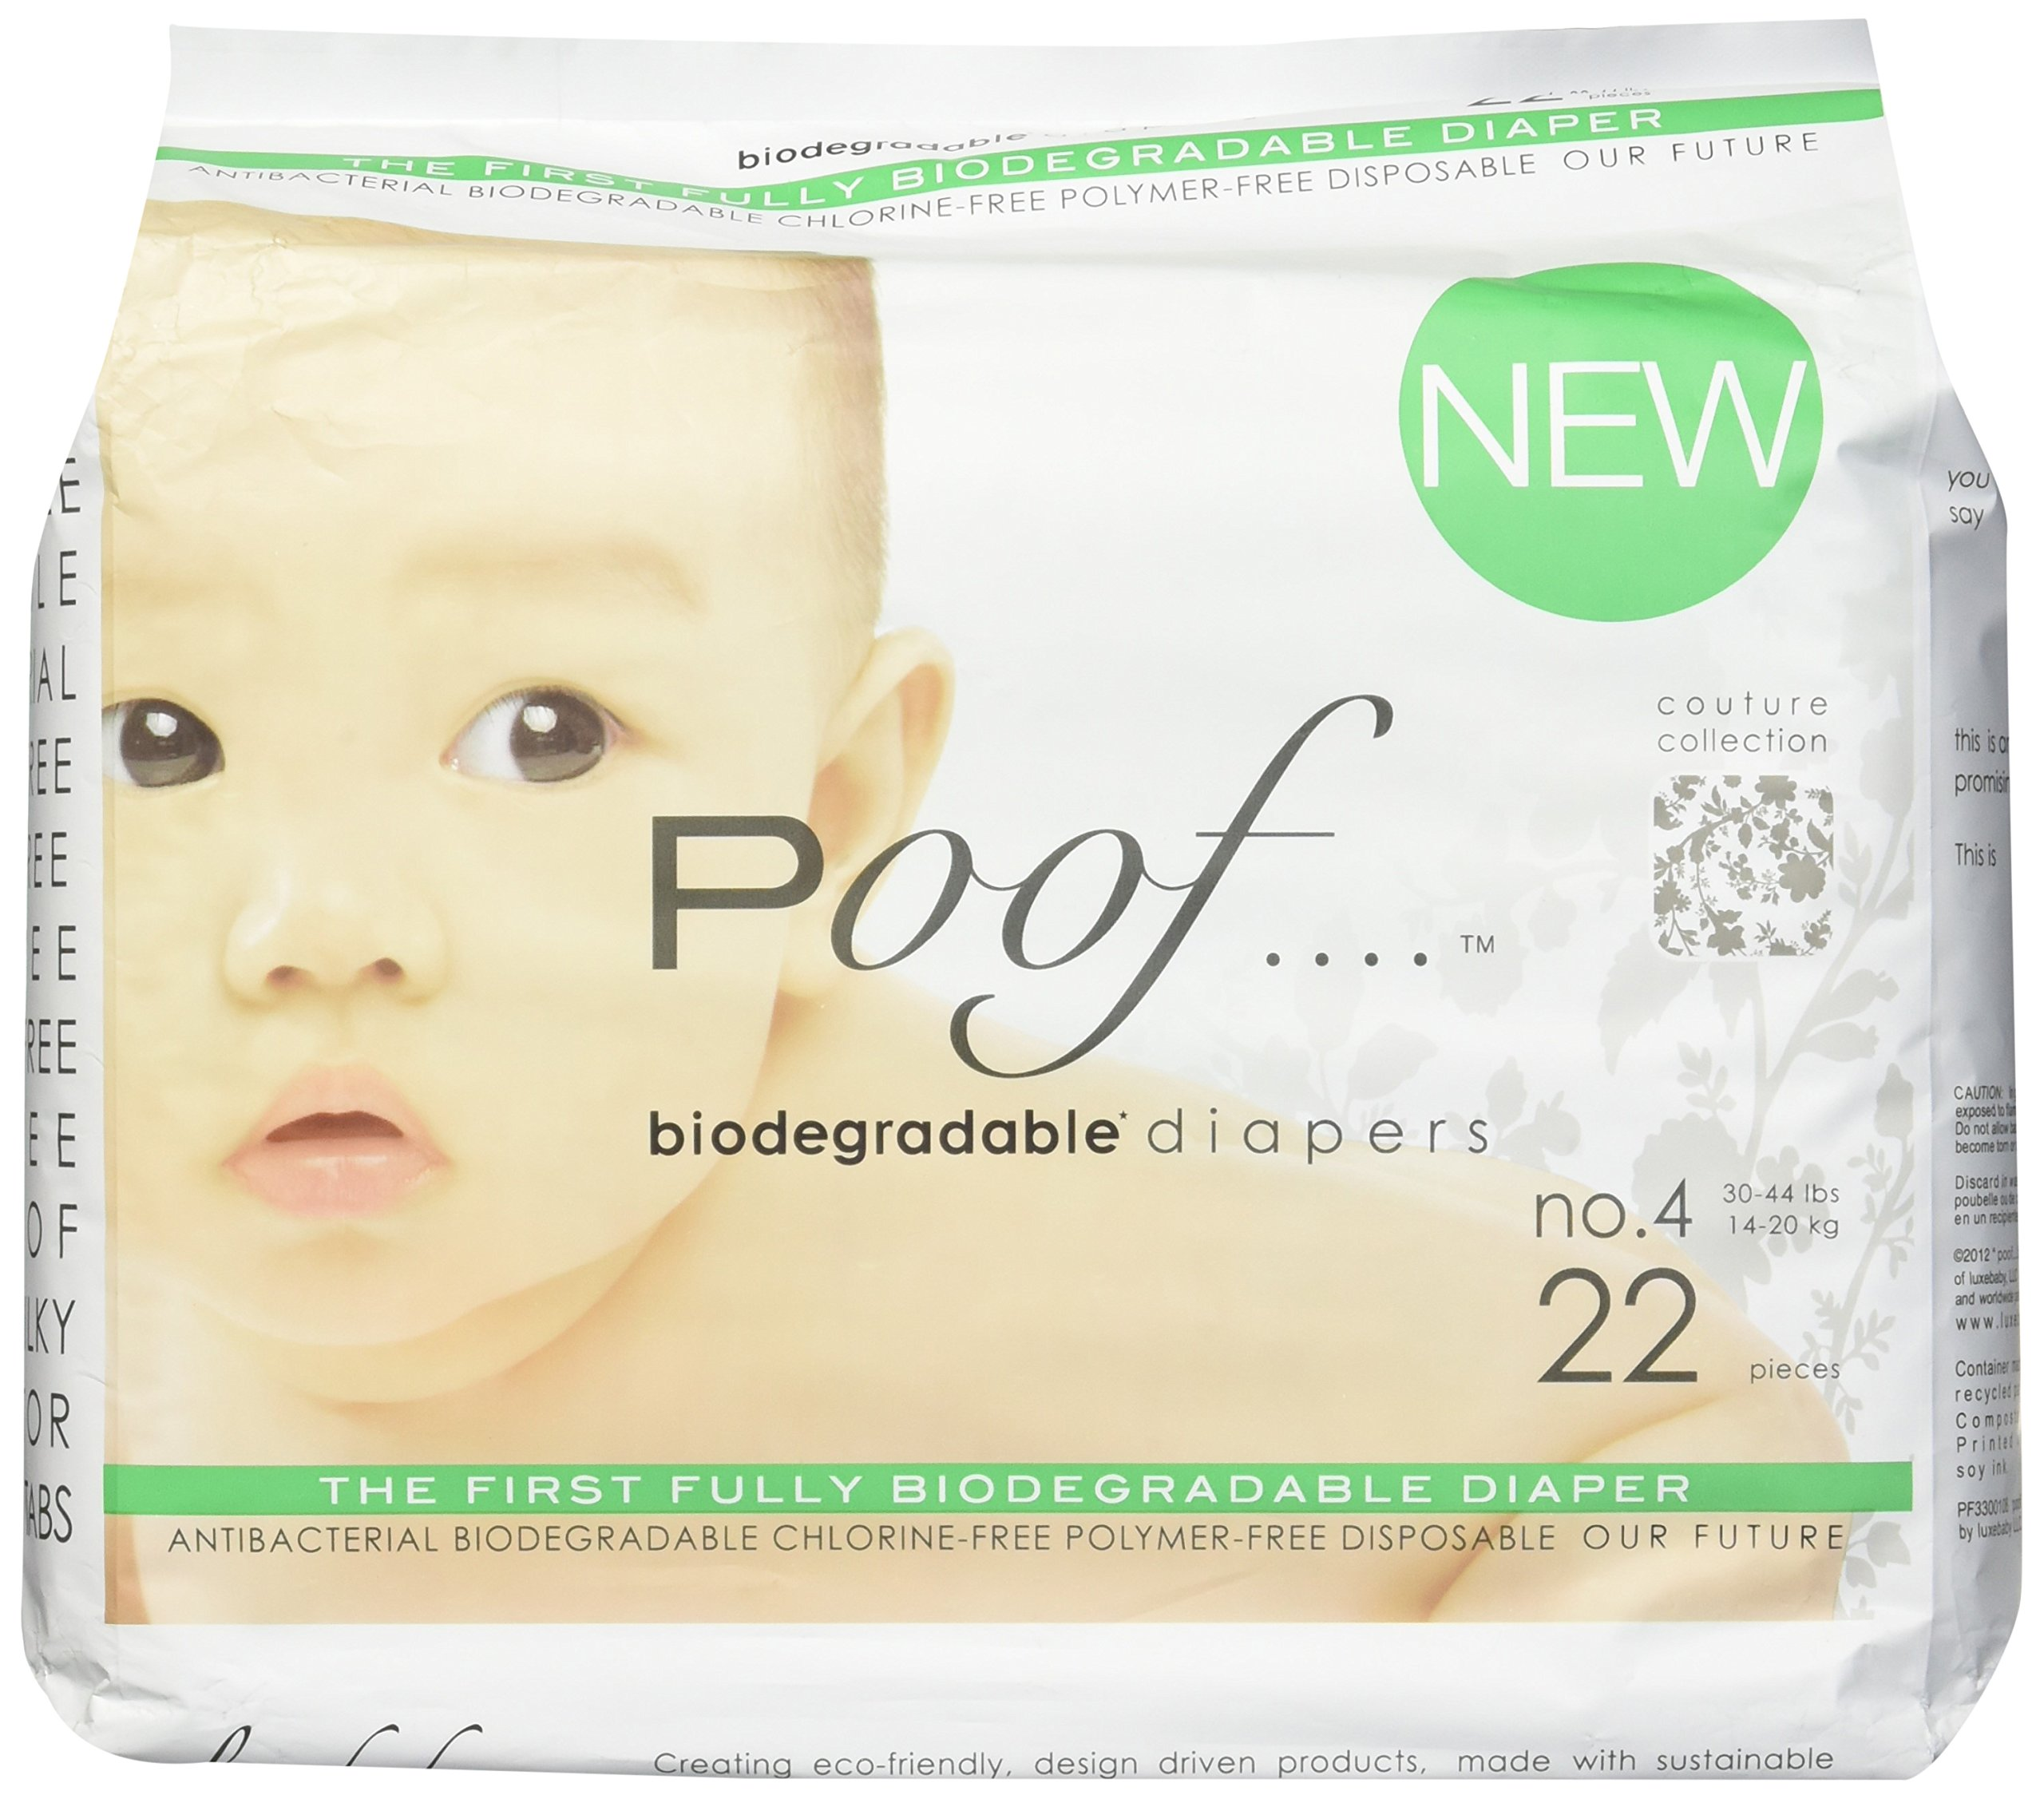 poof PF3300101 Biodegradable Antibacterial Disposable Diapers, 33 Count